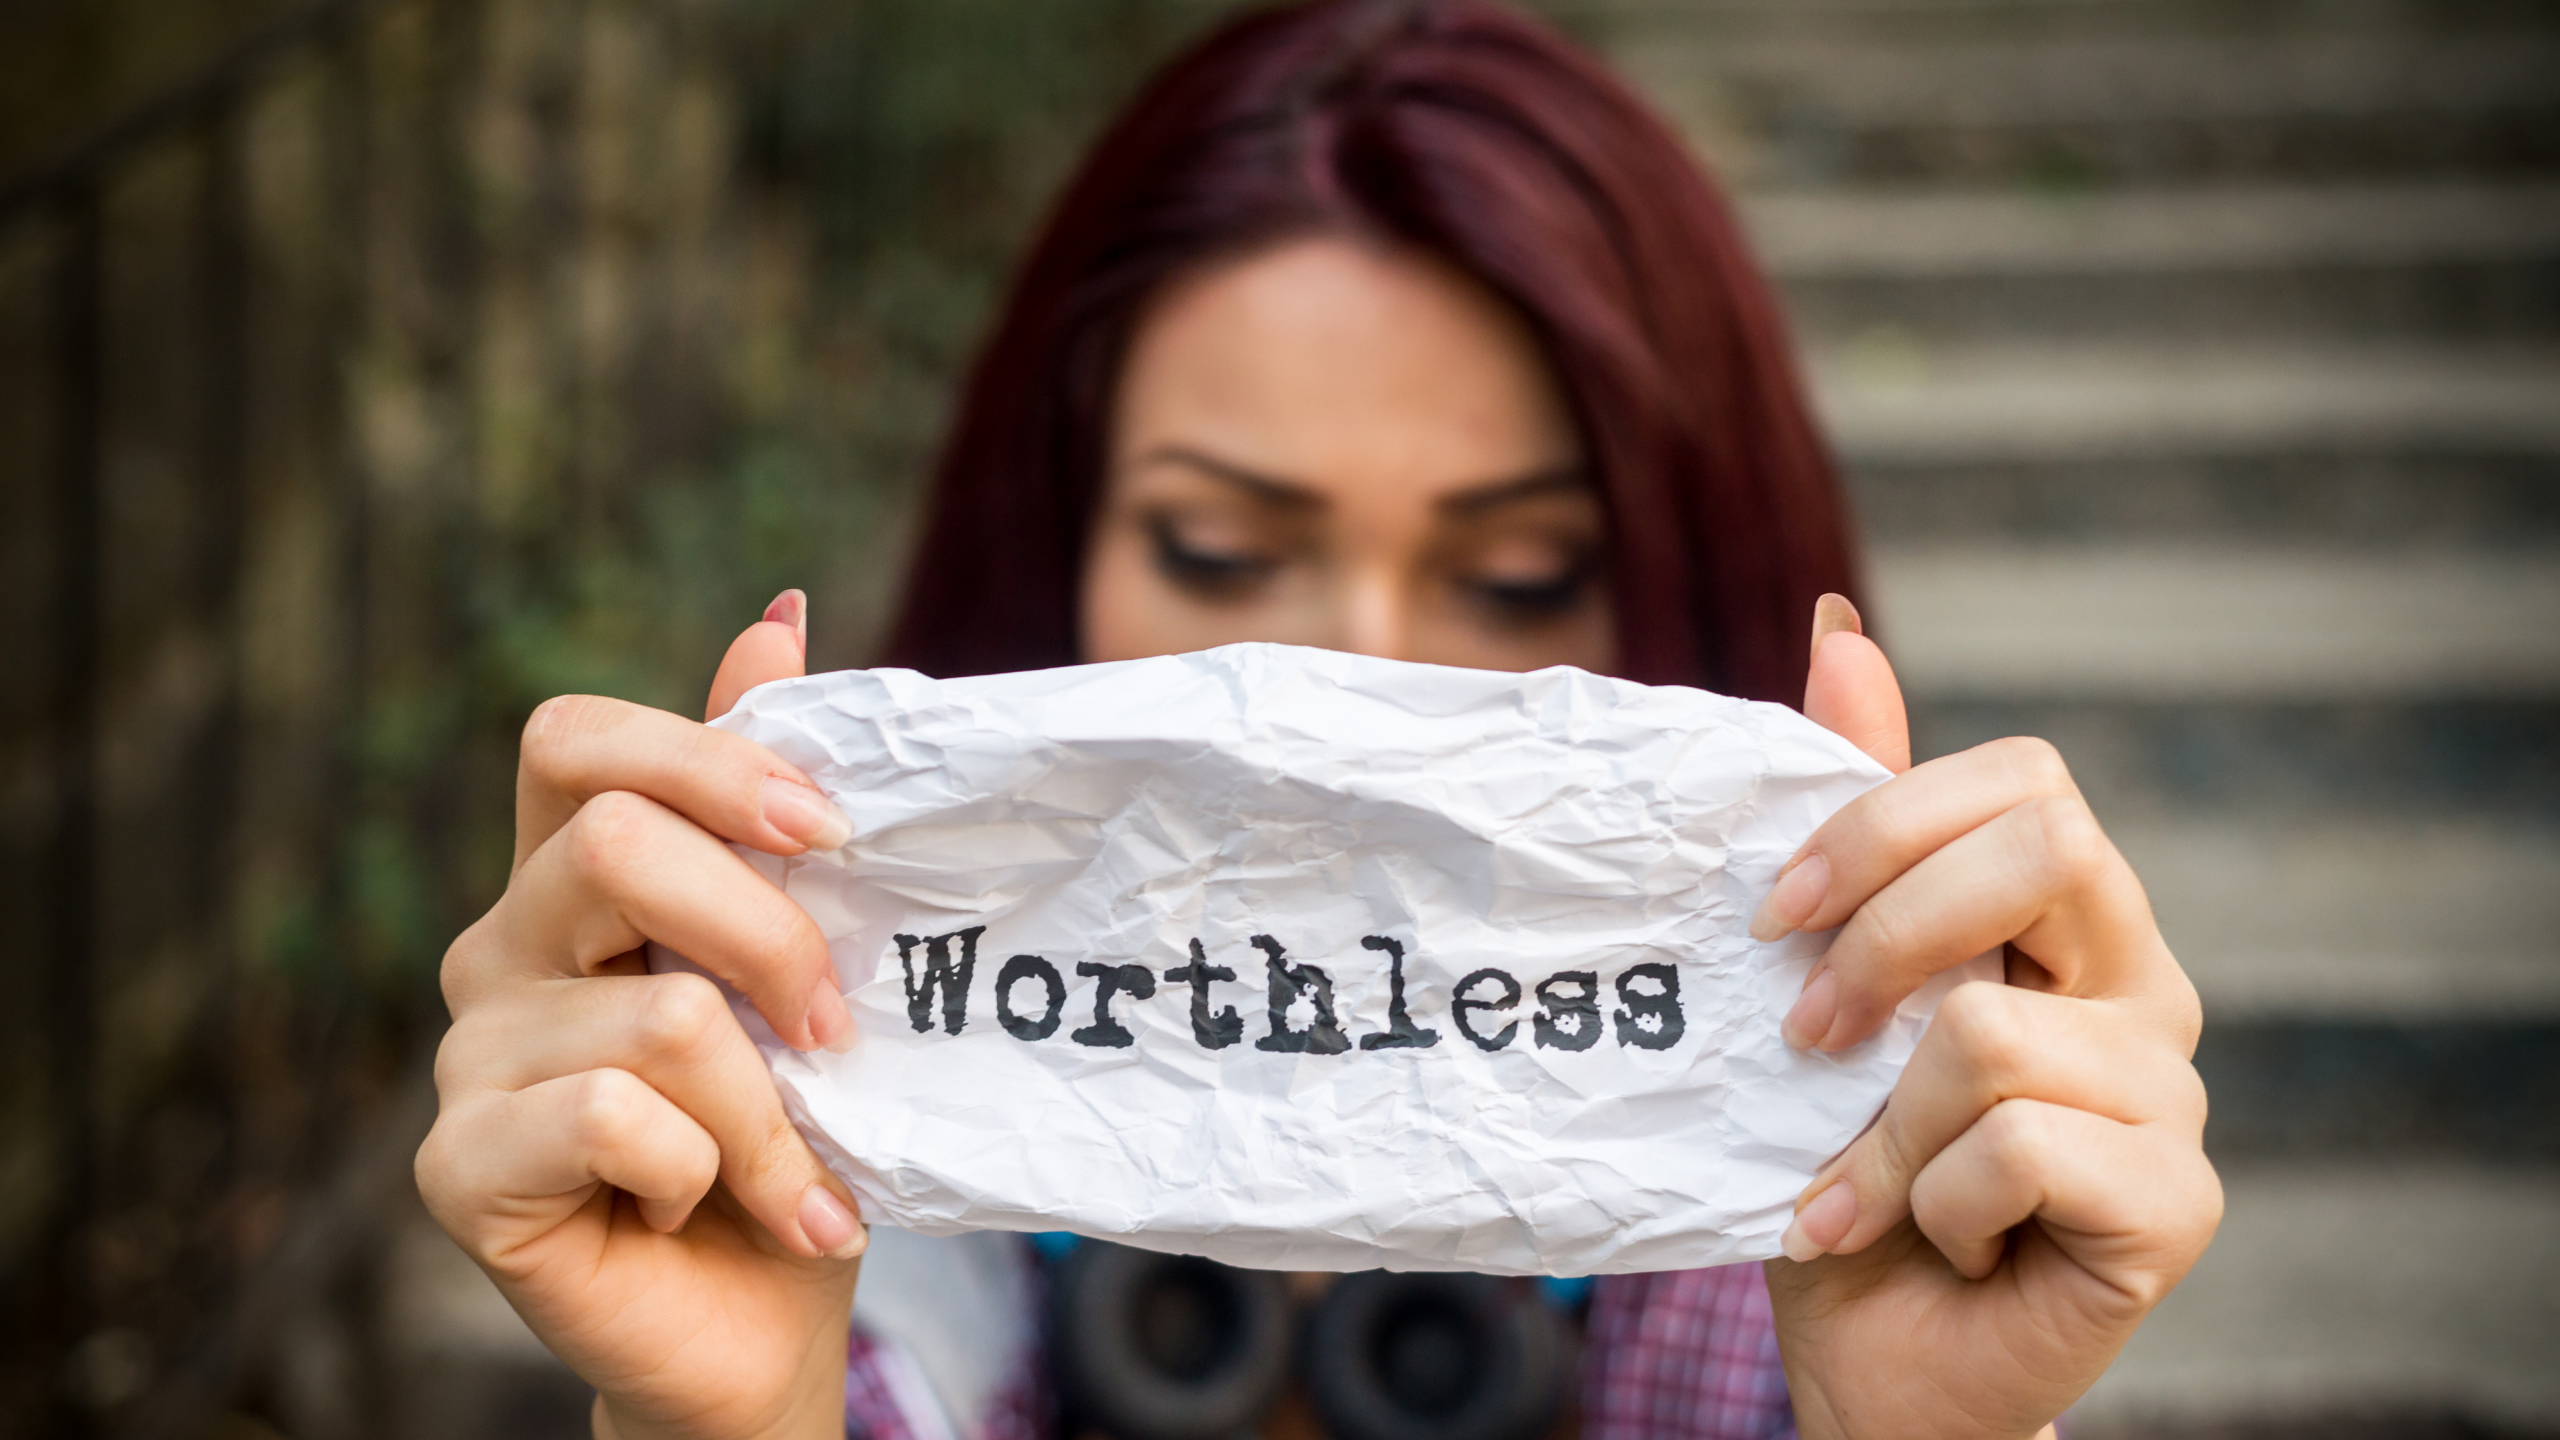 How To Make A Narcissist Feel Worthless